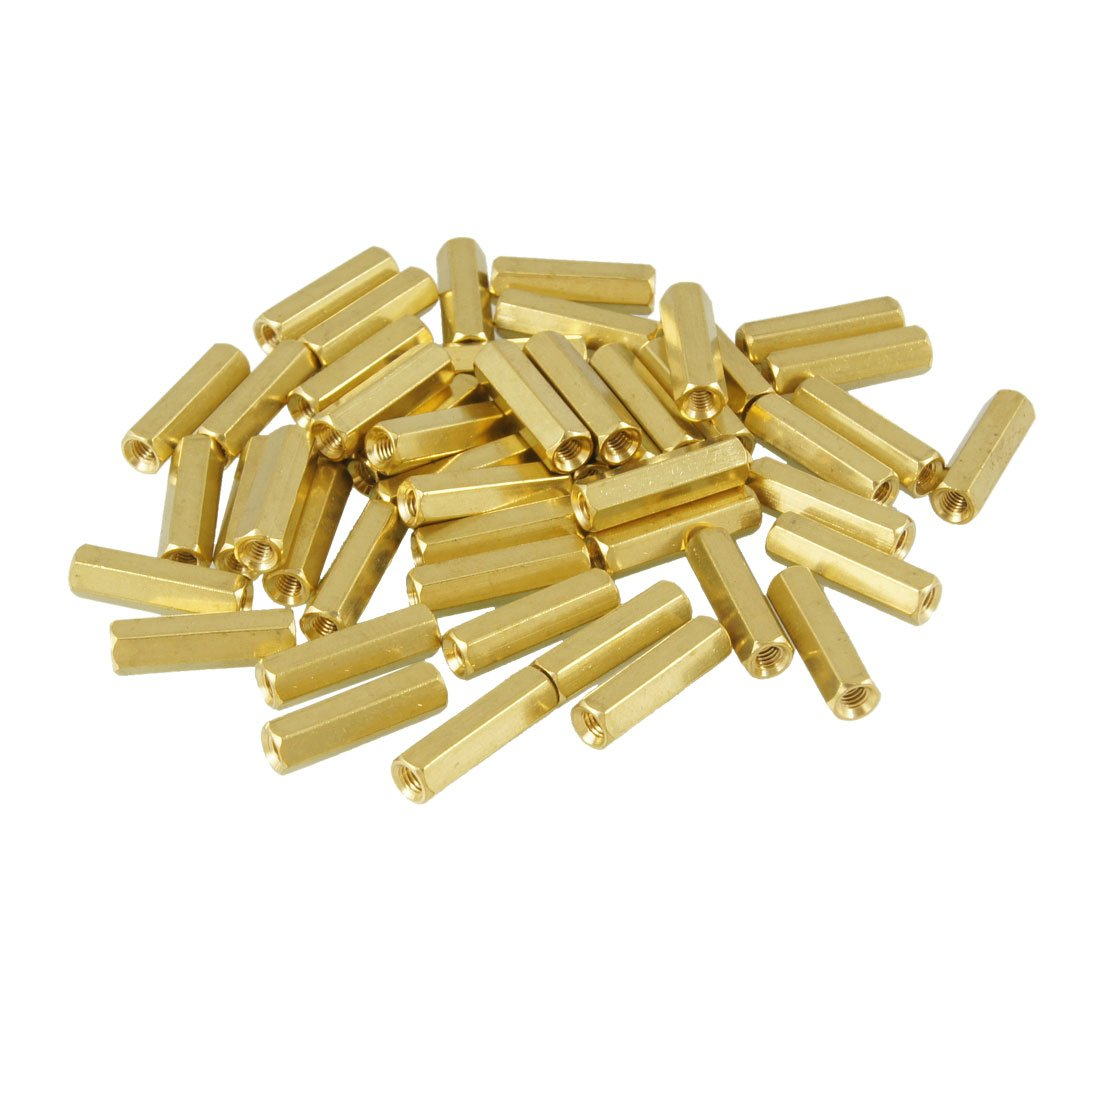 uxcell 50 Pcs M3X17mm Hex Head Female Thread PCB Standoff Spacers